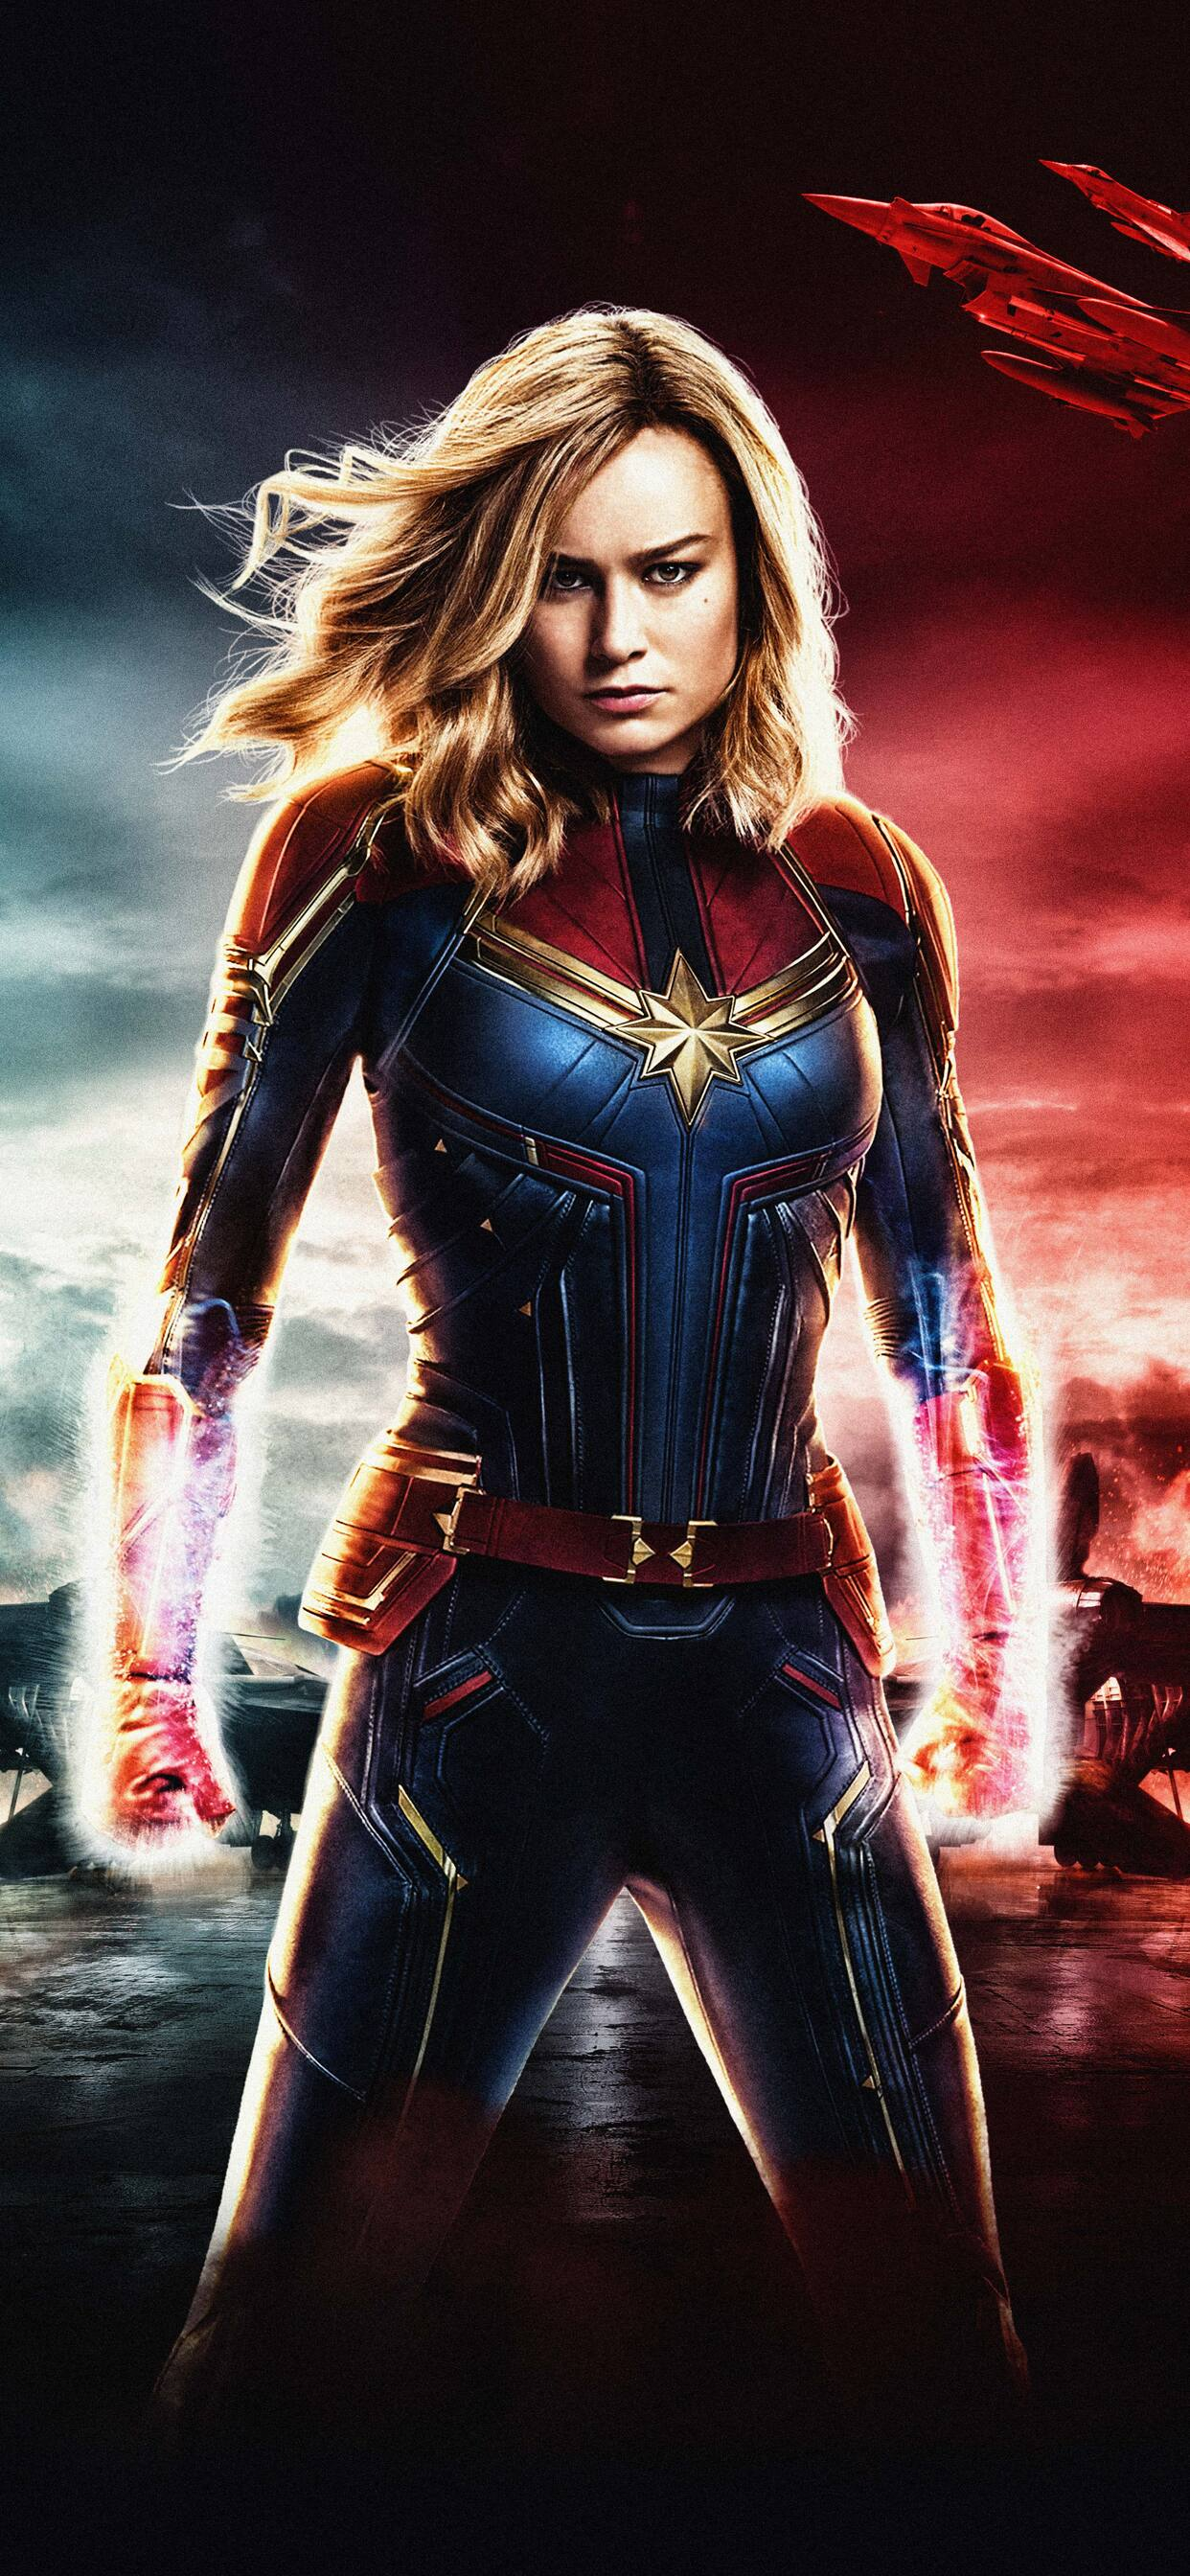 1242x2688 Captain Marvel Movie 2018 5k Iphone Xs Max Hd 4k